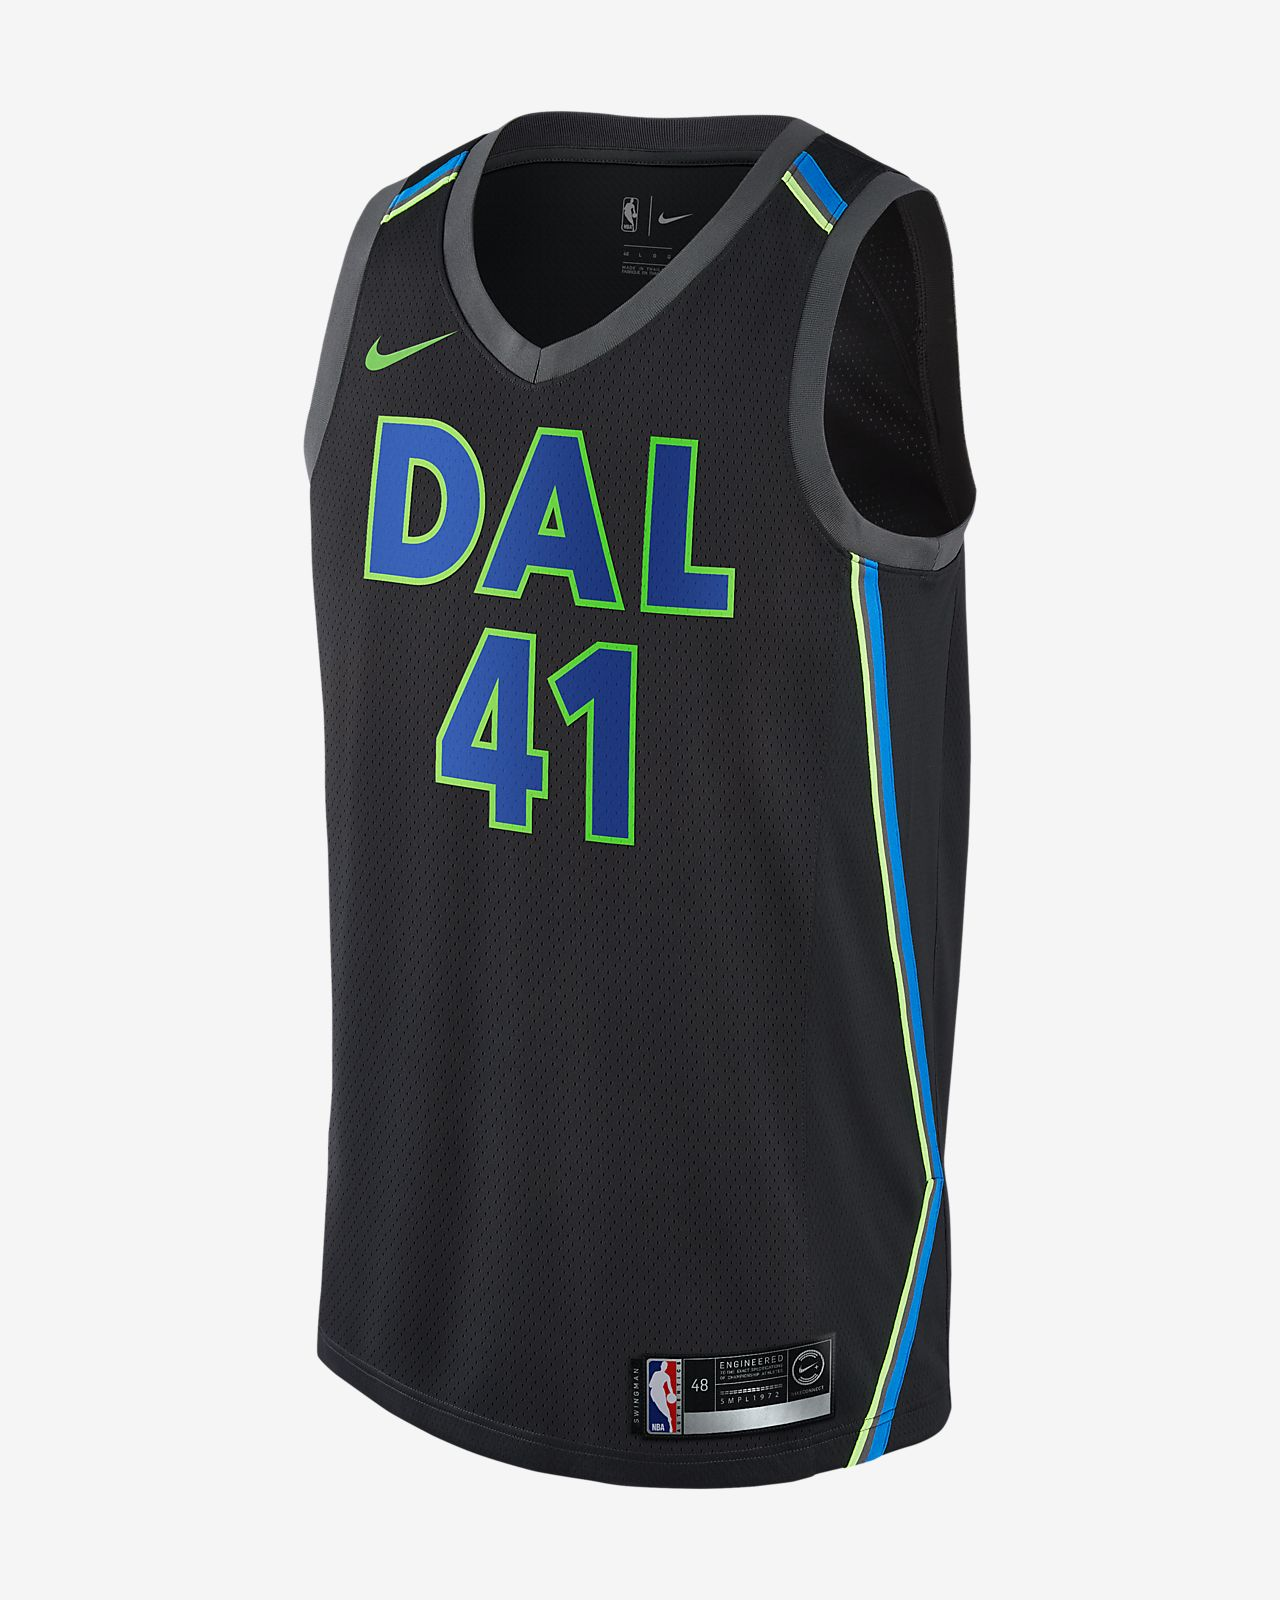 Men s Nike NBA Connected Jersey. Dirk Nowitzki City Edition Swingman Jersey  (Dallas Mavericks) 92a1592dc